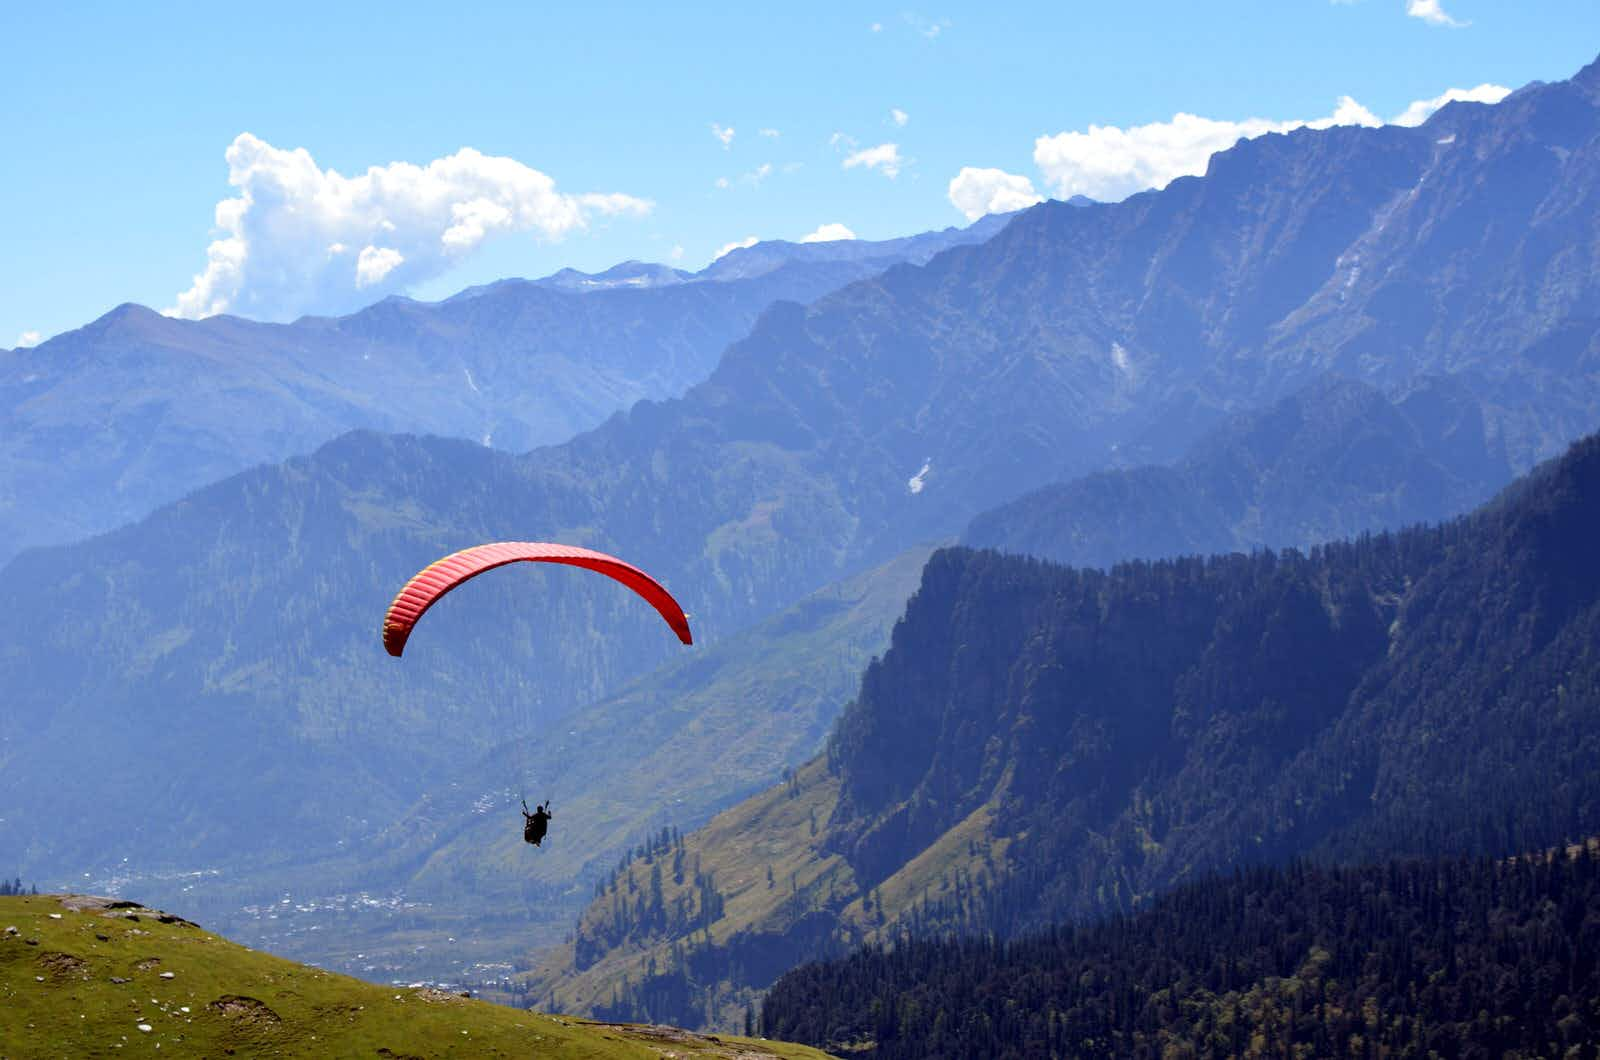 Himachal Pradesh: adventures in India's mountain playground